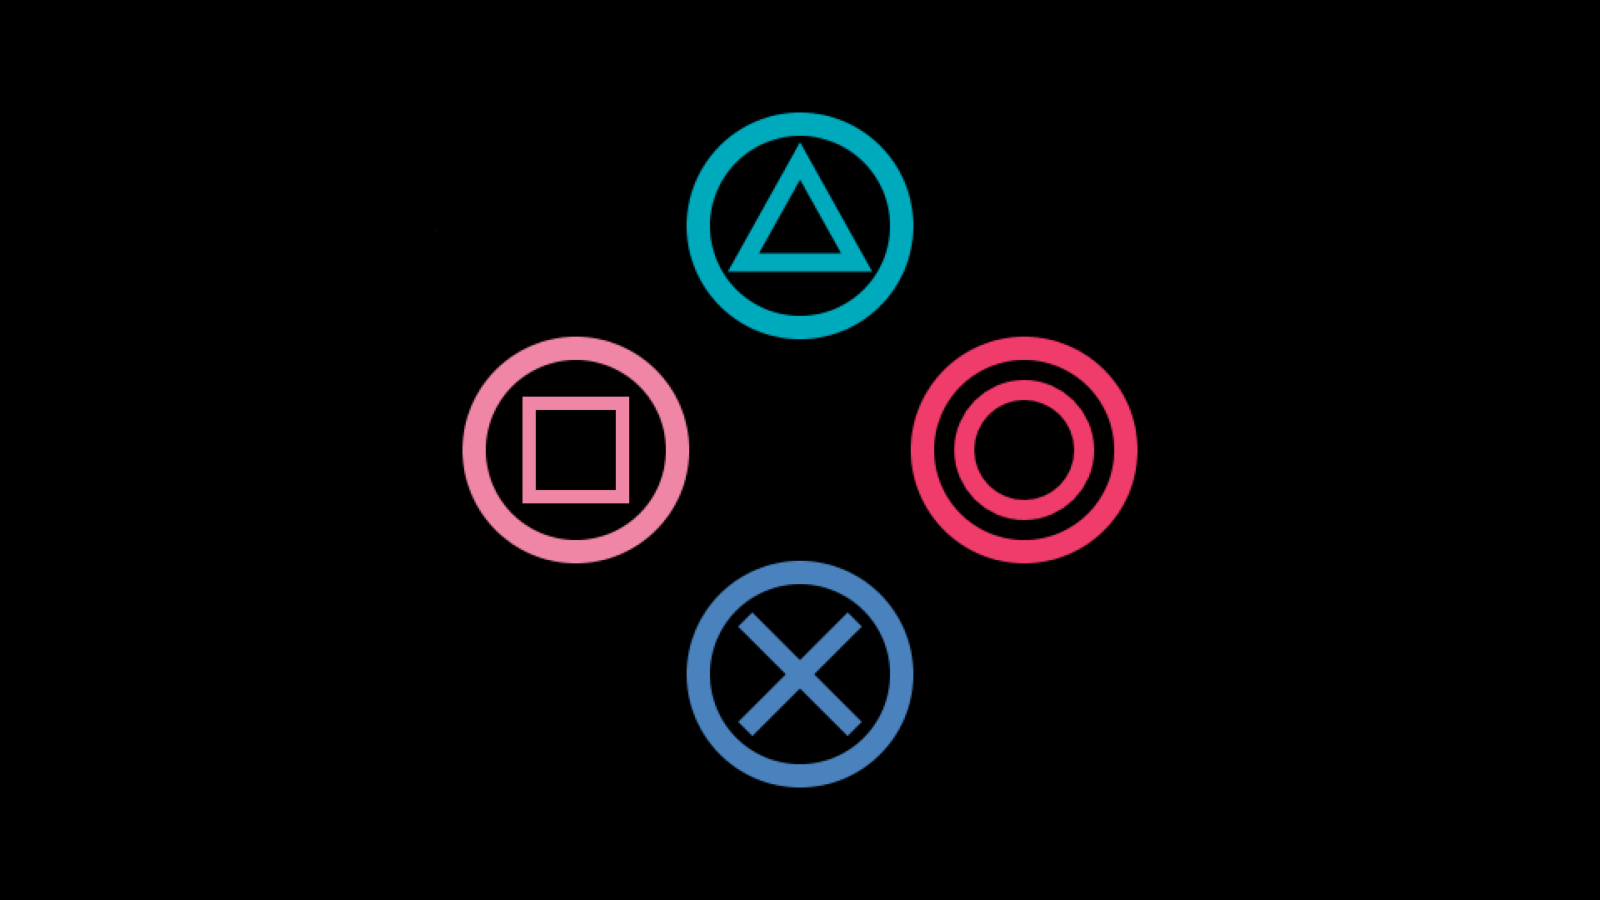 Playstation Buttons Wallpapers Top Free Playstation Buttons Backgrounds Wallpaperaccess